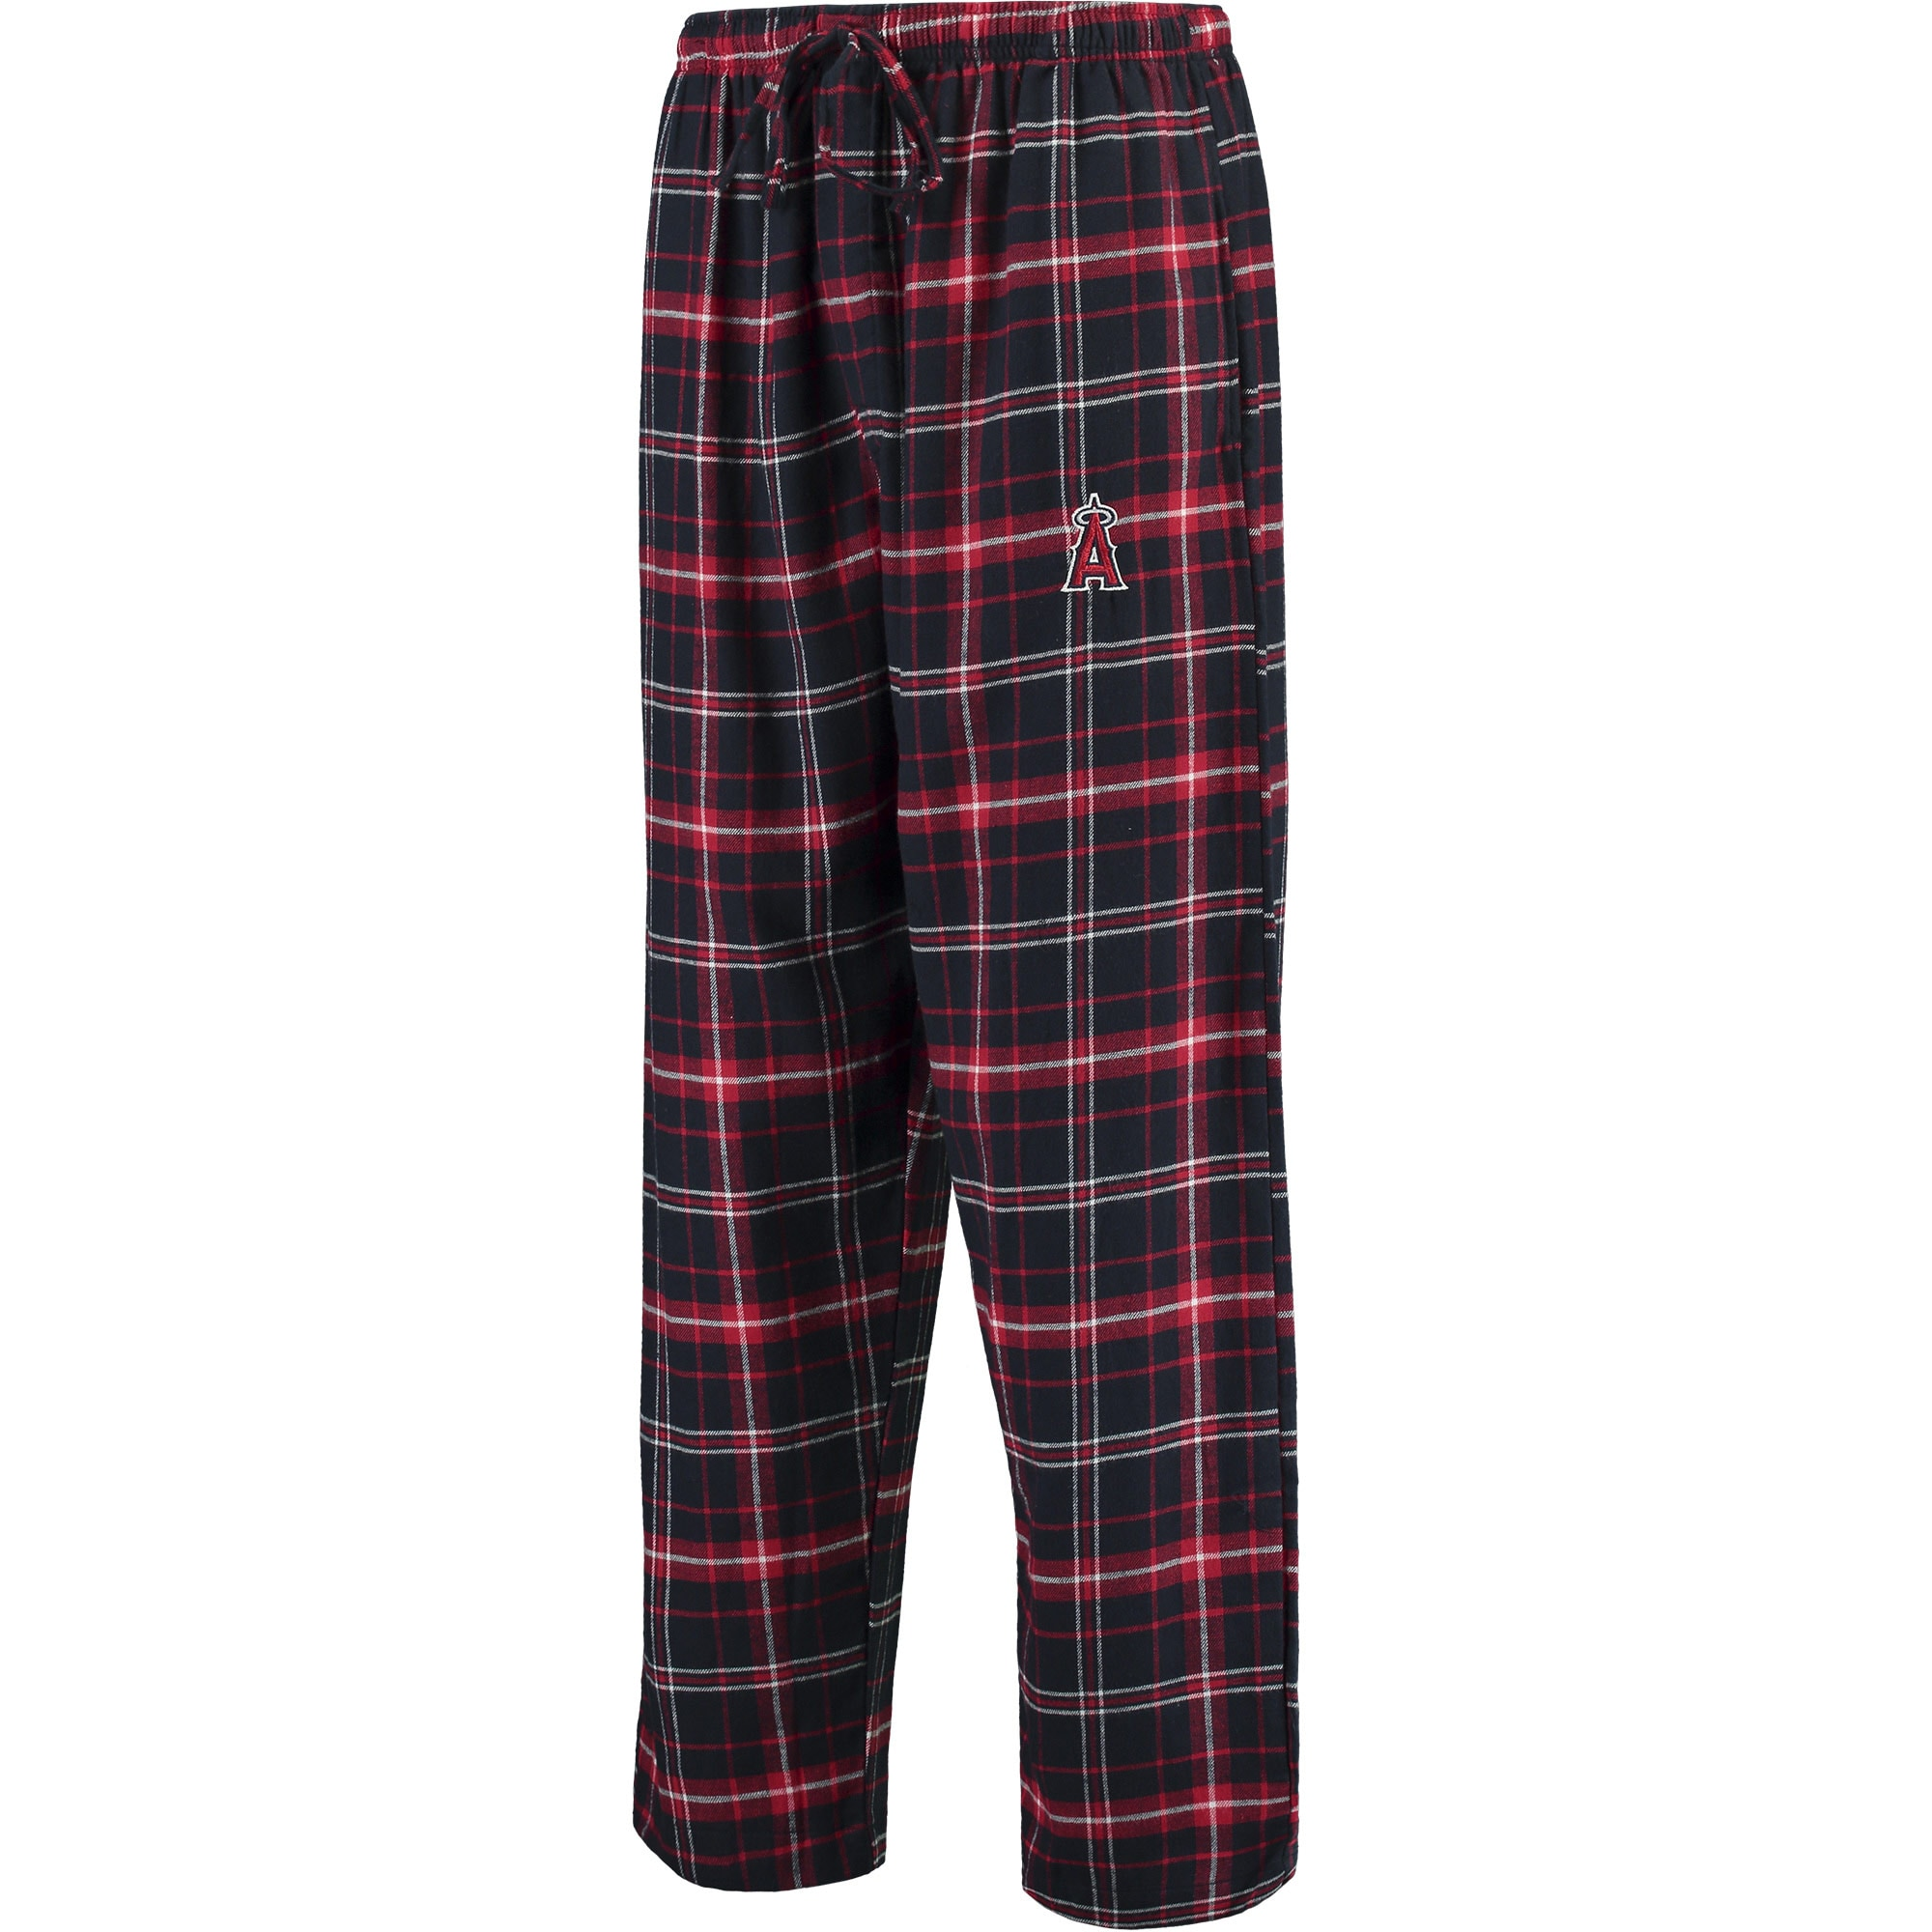 Los Angeles Angels Concepts Sport Ultimate Plaid Flannel Pants - Navy/Red